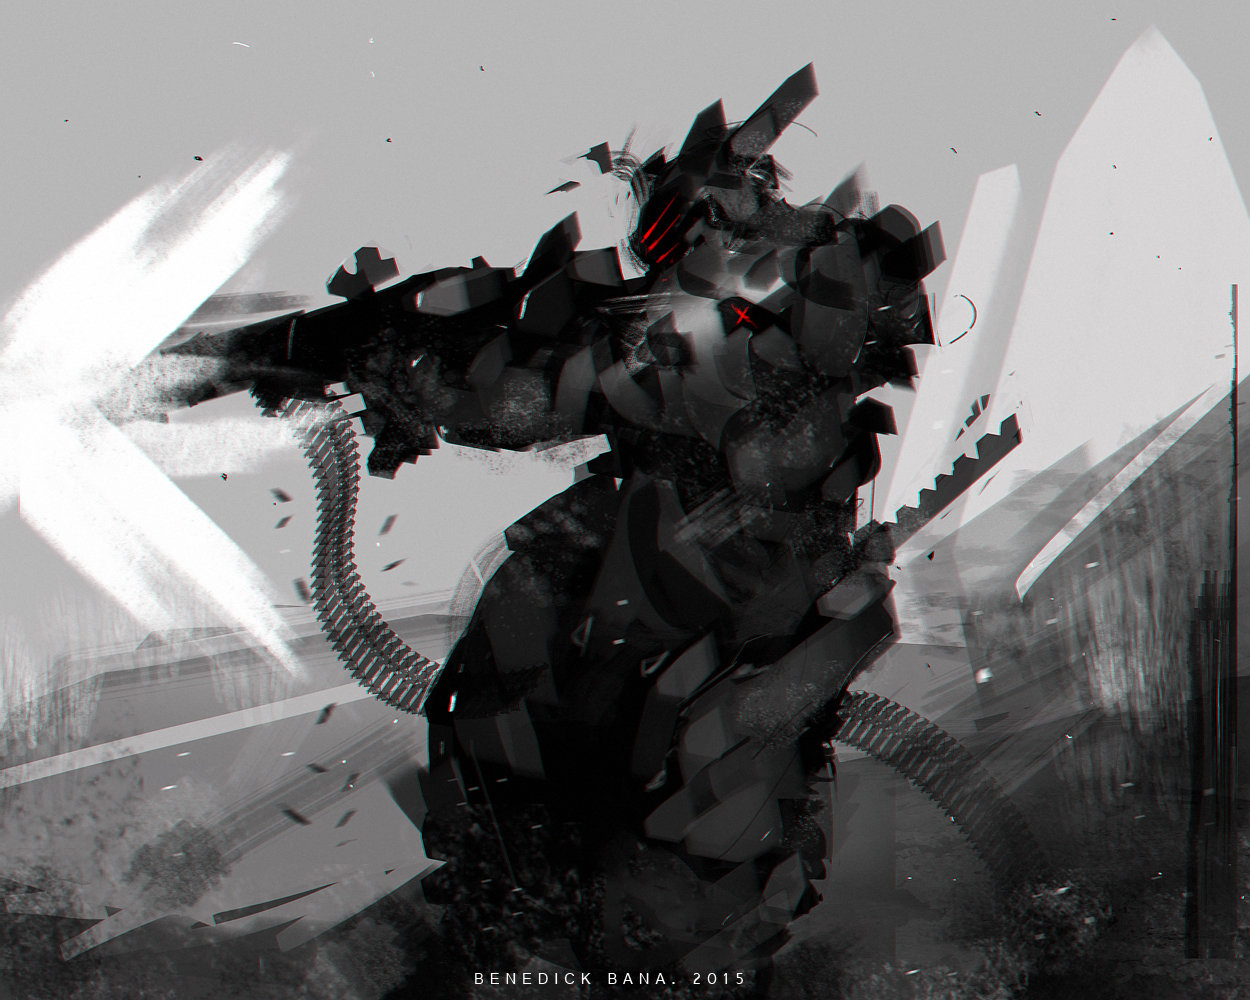 Benedick bana rush final lores